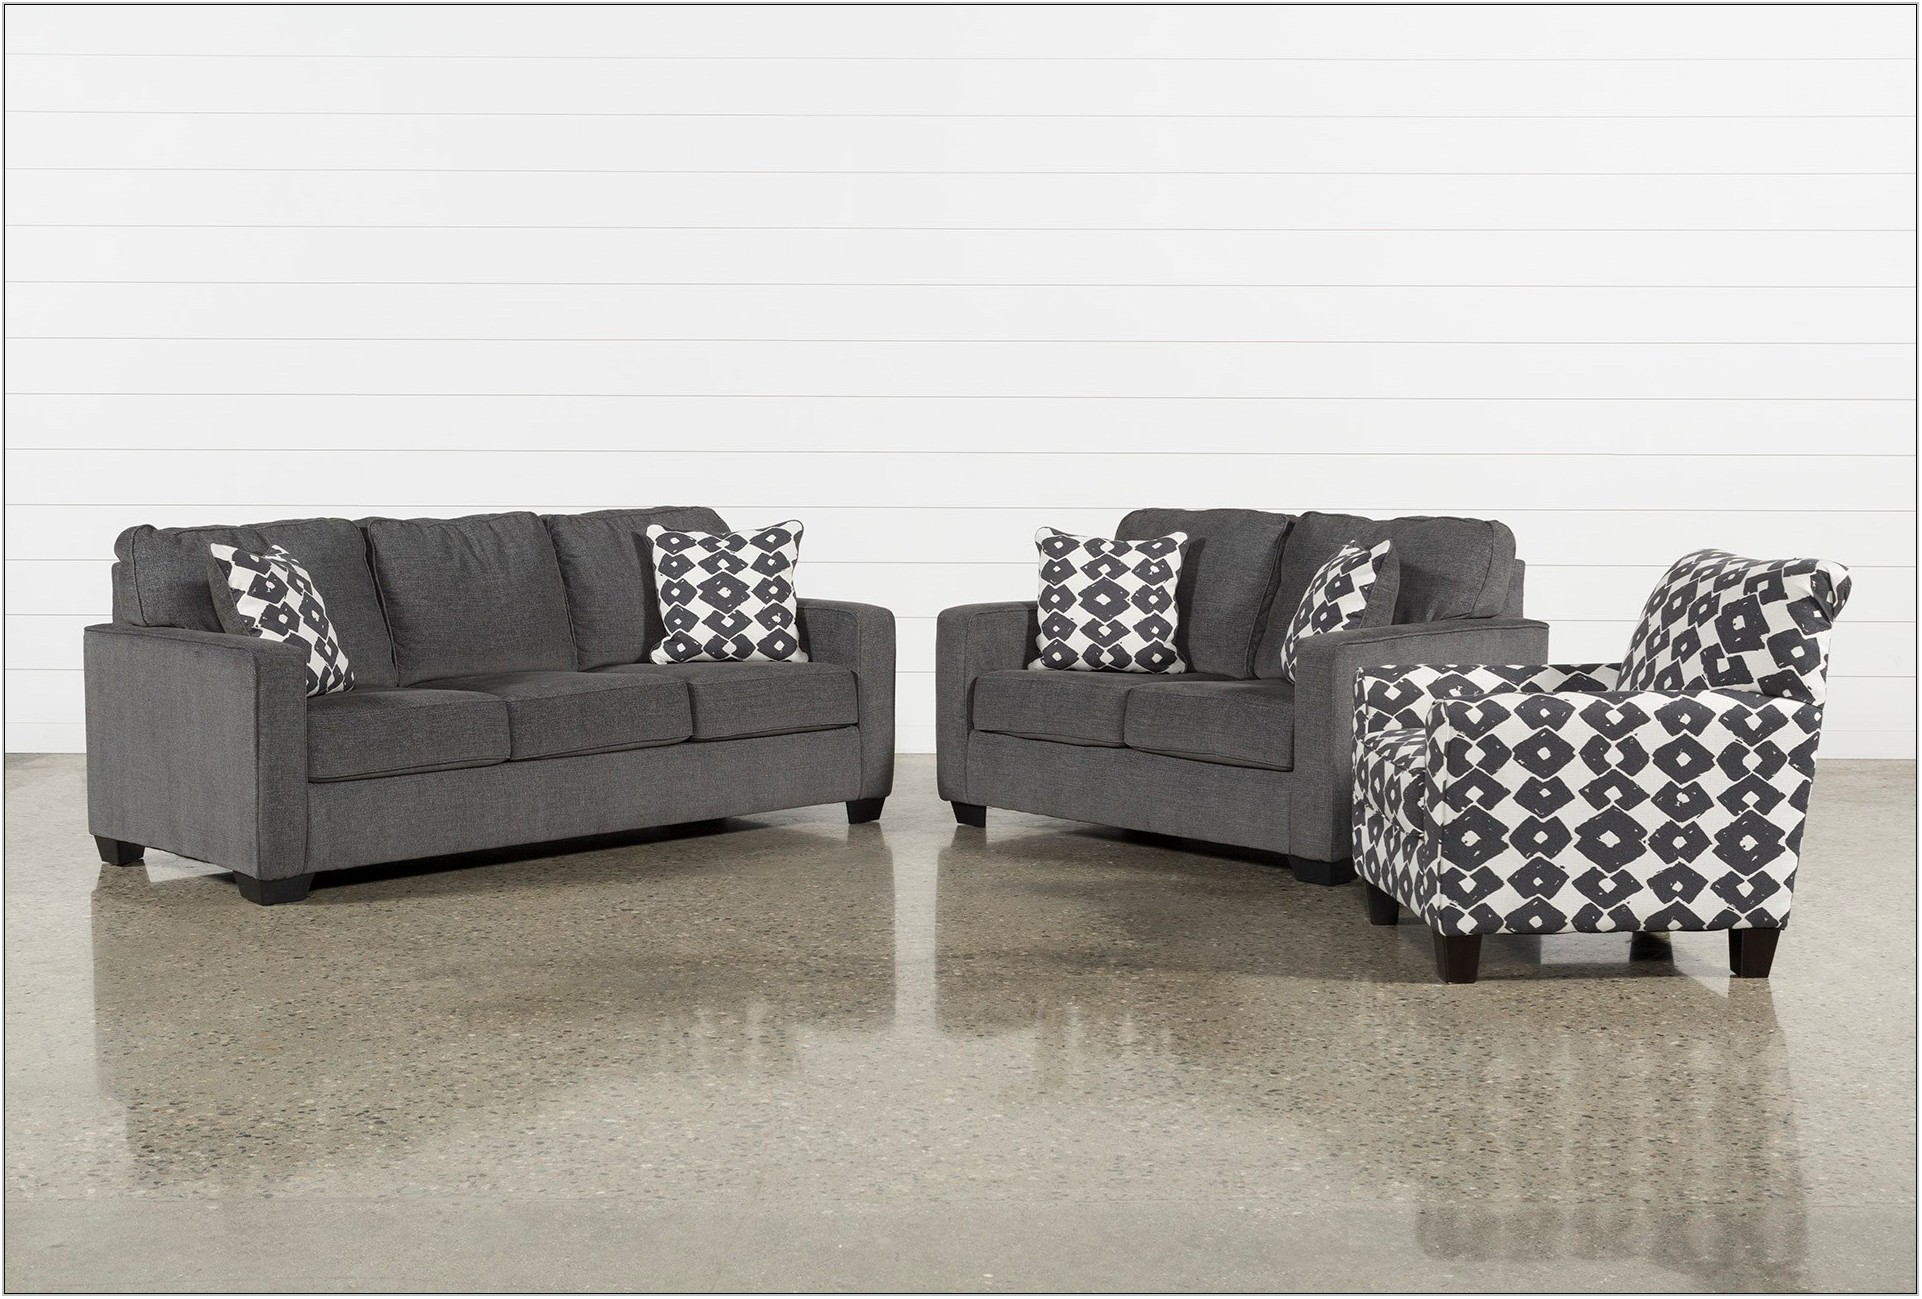 3 Piece Living Room Set On Sale